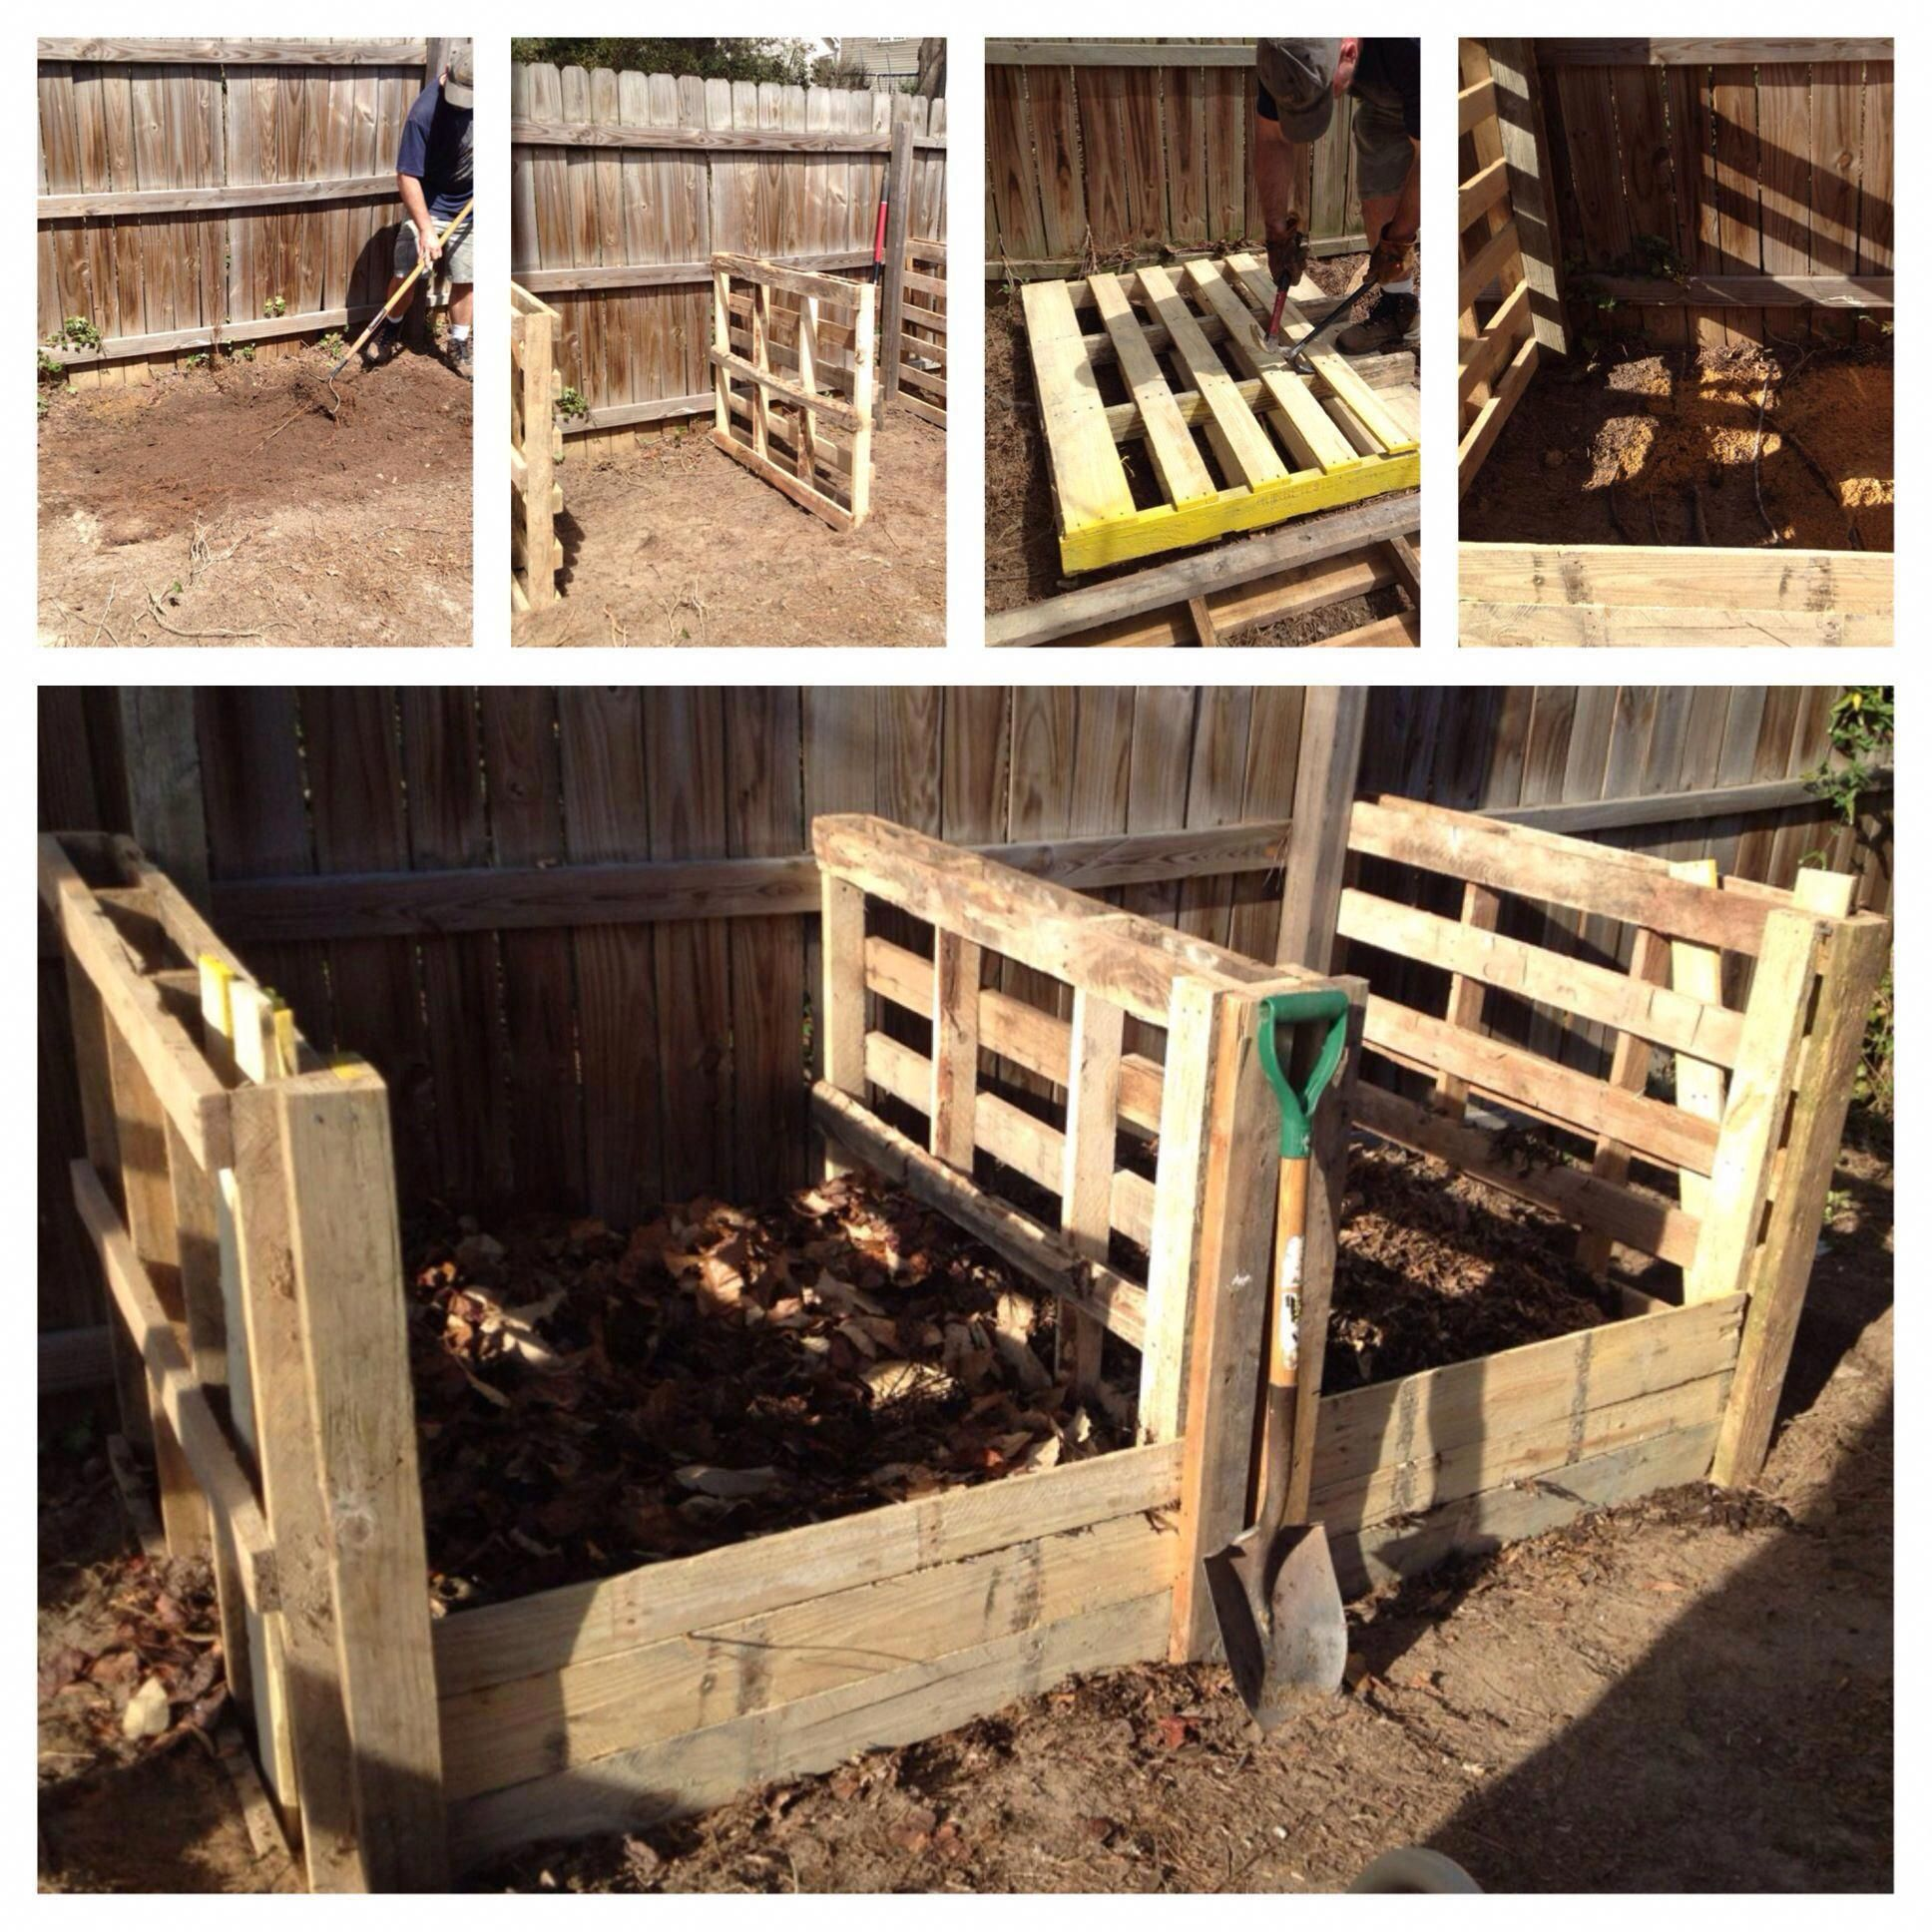 Compost Bin Inside Our Chicken Run Made From Pallets